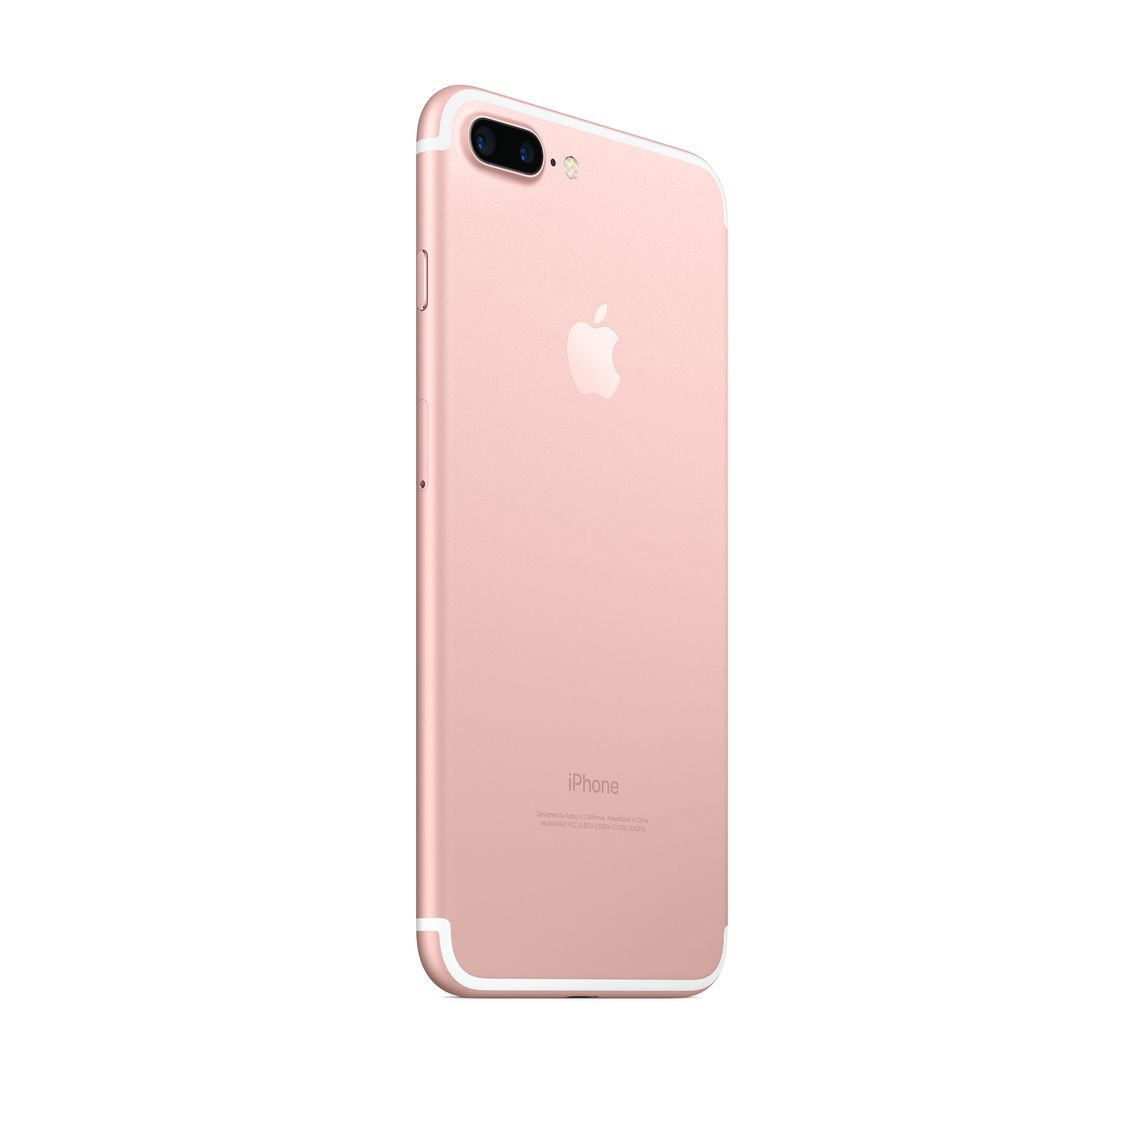 Refurbished iPhone 7 Plus 256GB - Rose Gold (Unlocked)